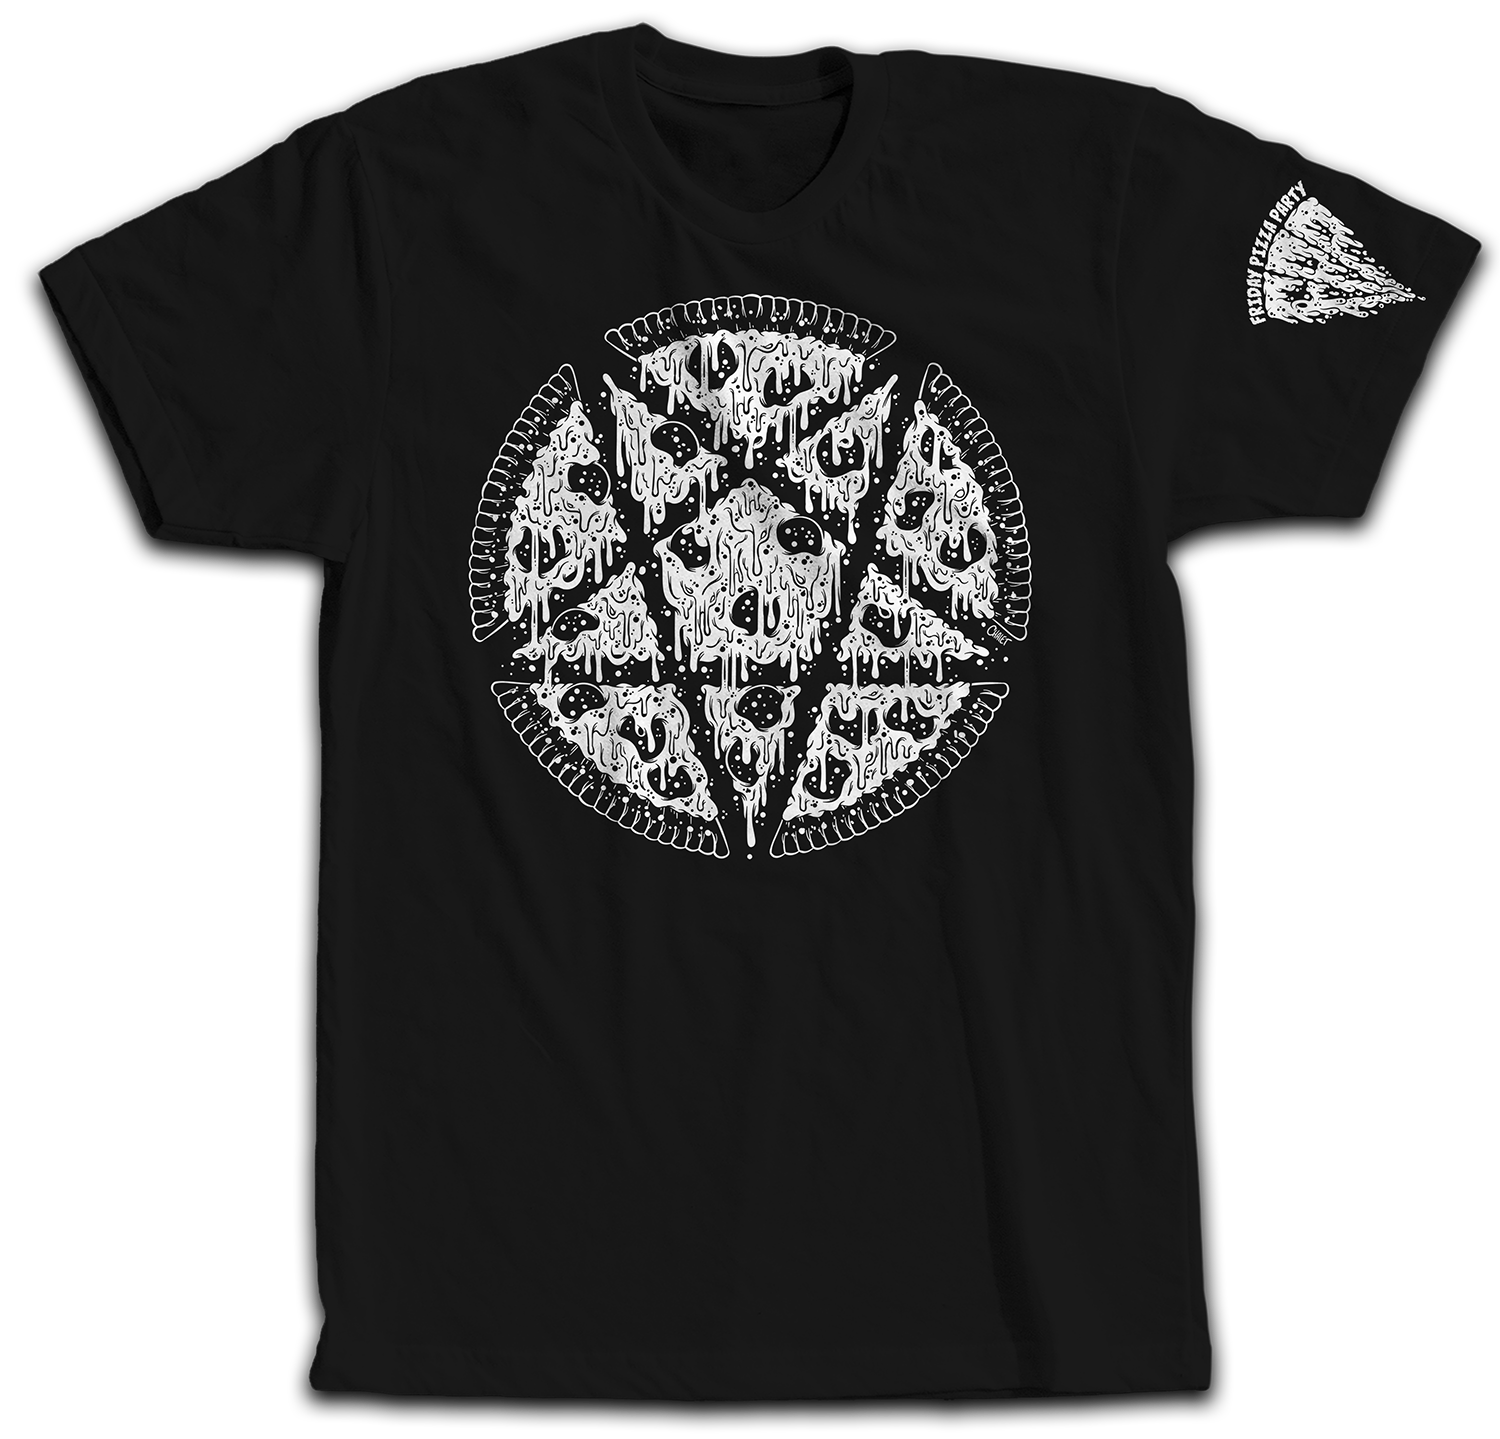 PizzaGram3.0_T-Shirt.png